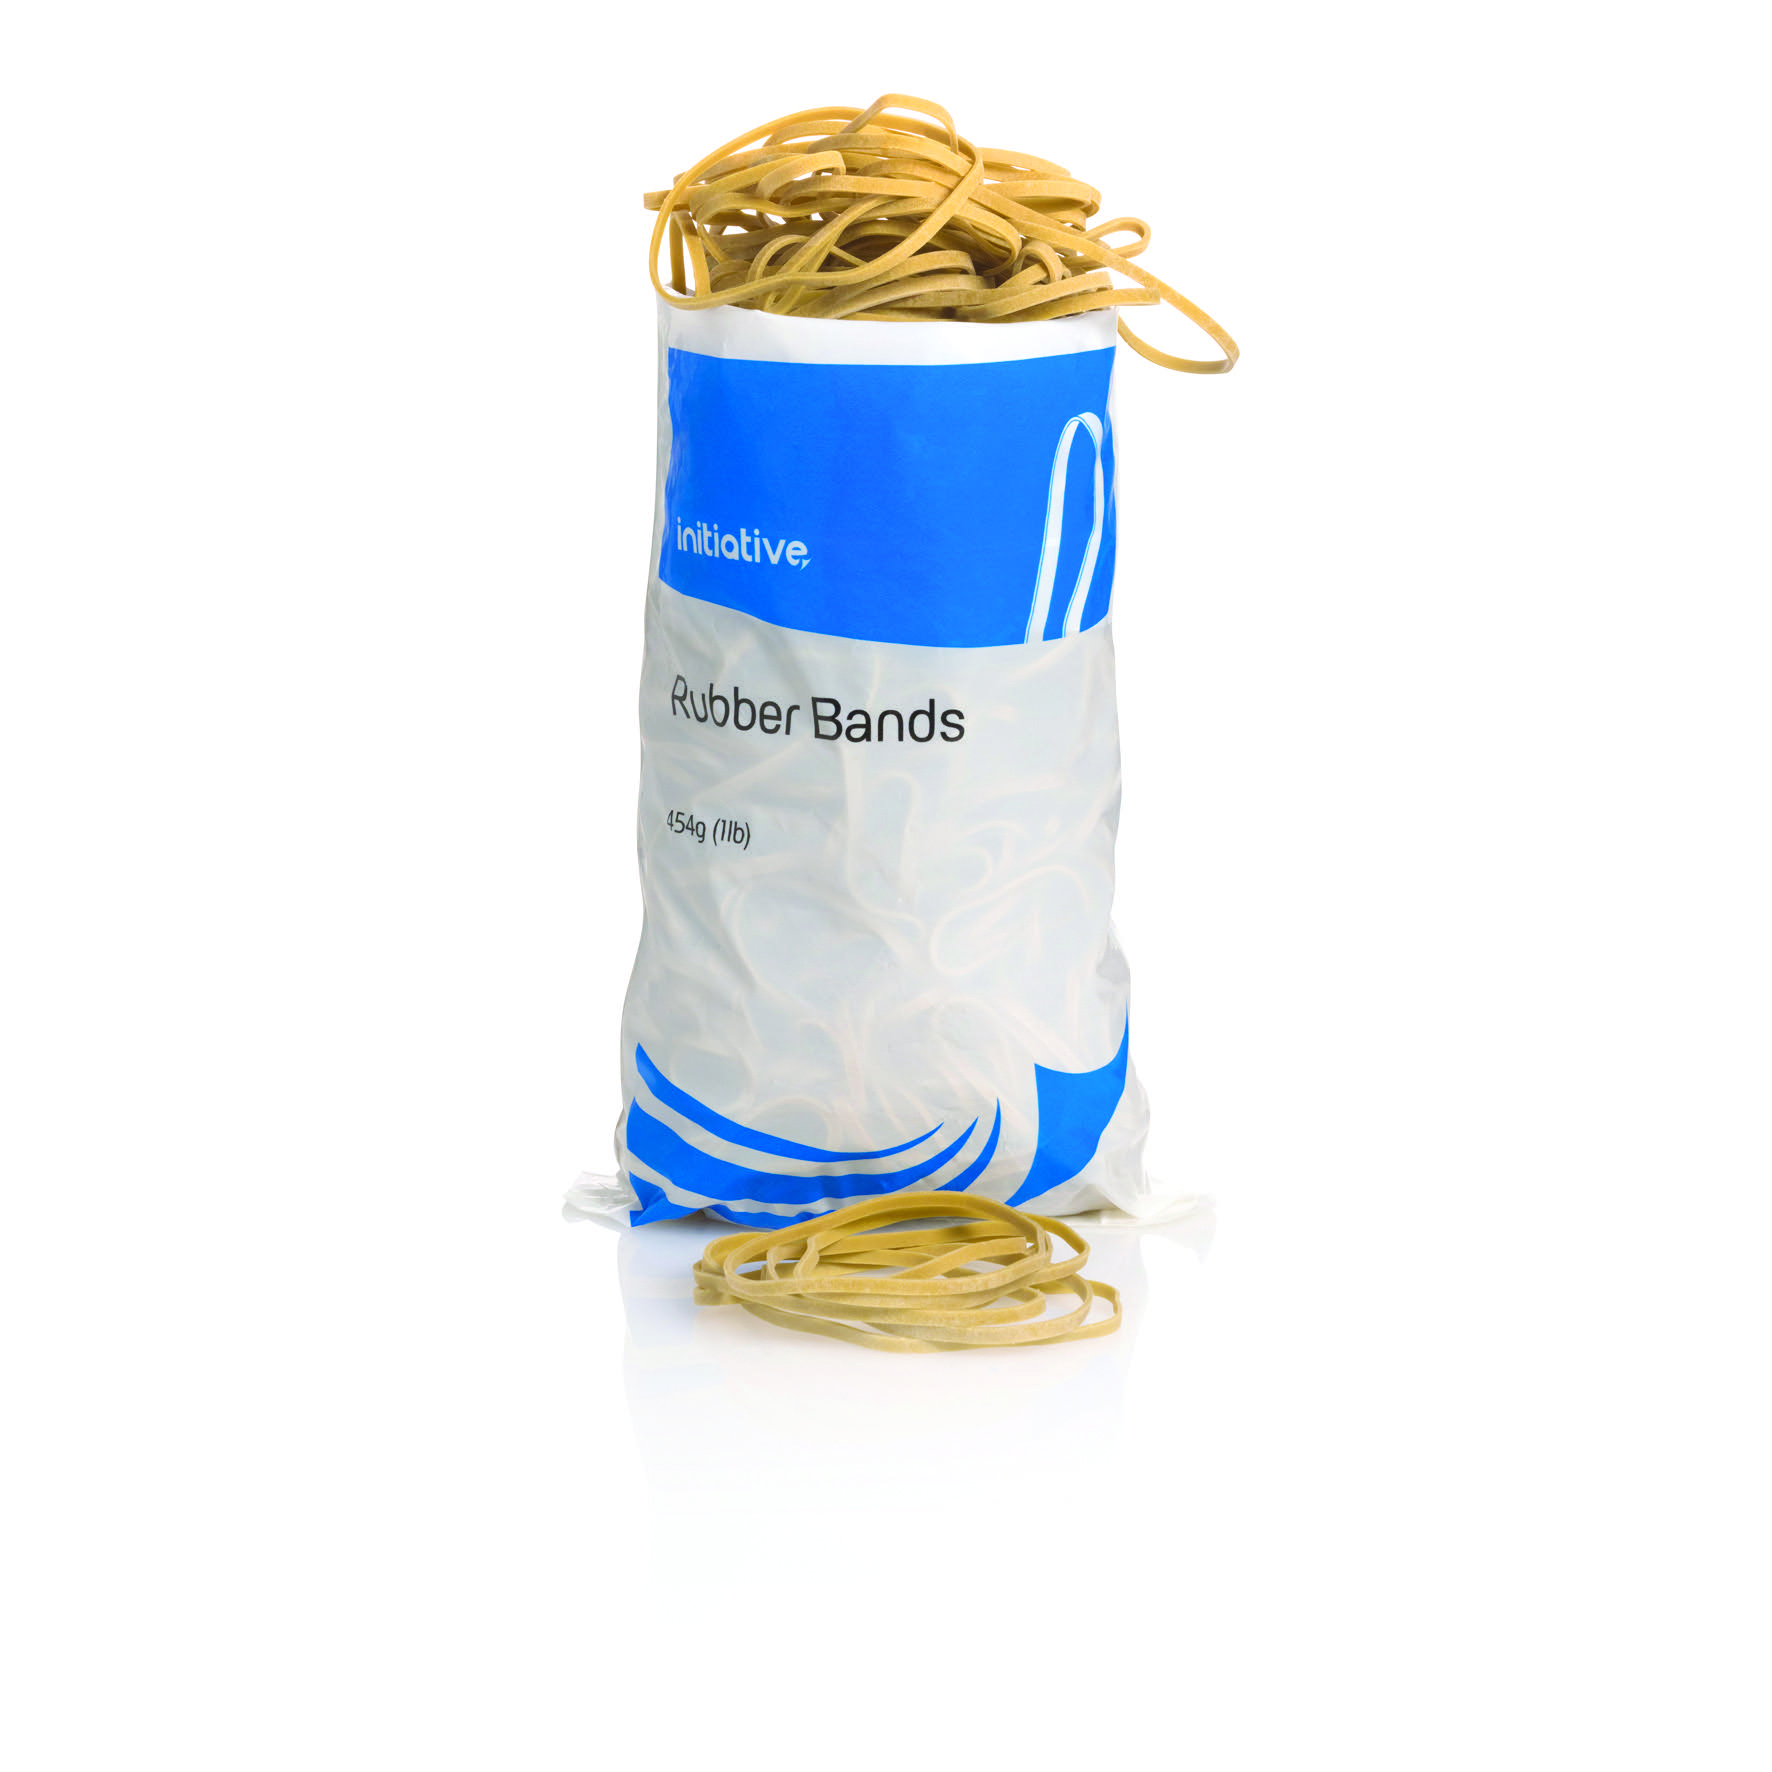 High quality rubber bands for everyday use. Assorted Sizes